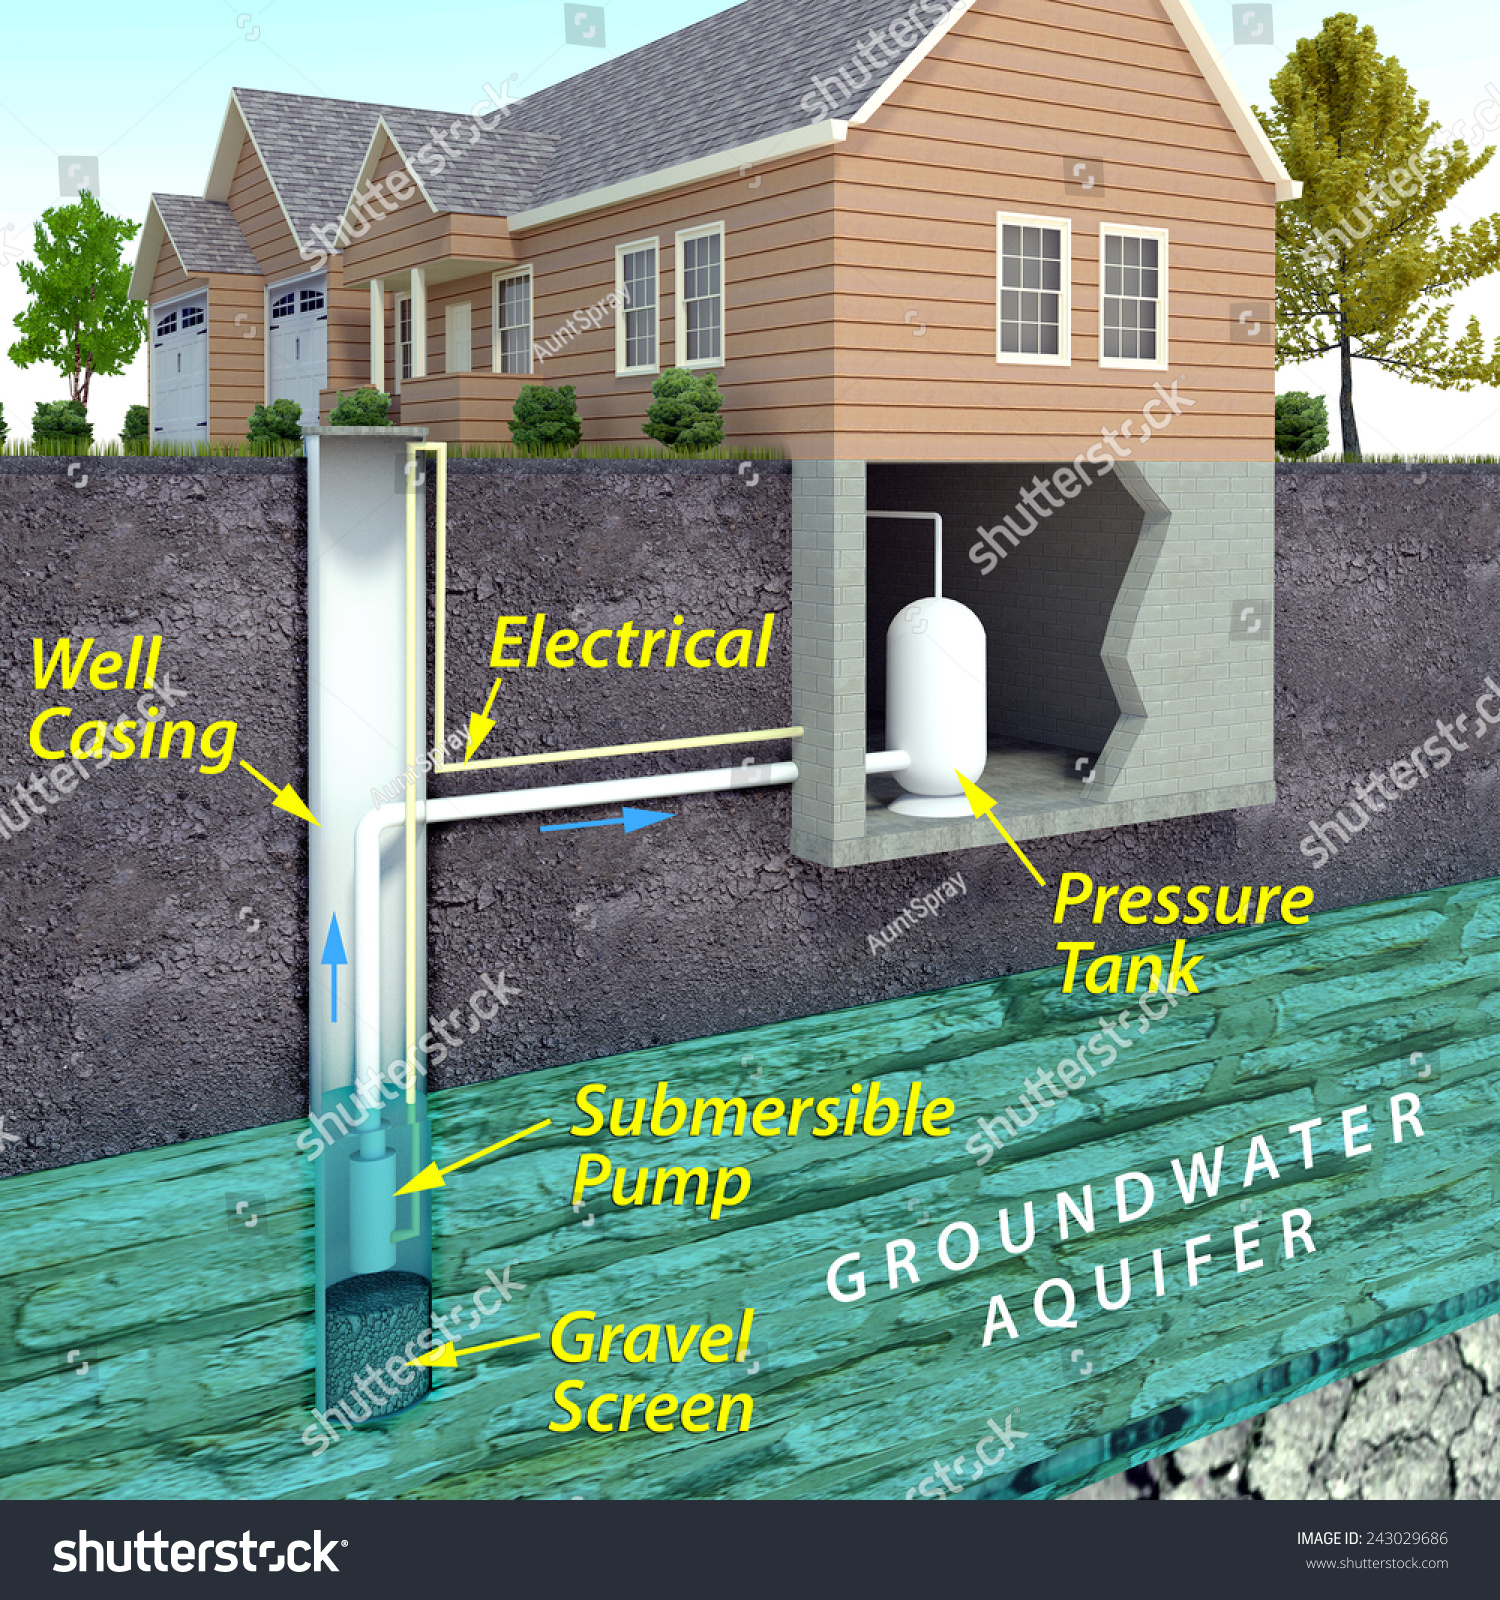 Ni Al Phase Diagram together with Automatic Soap Dispenser Ir Proximity Sensor moreover Surecal 12v240v Motorhome Water Heater Calorifier Installation Instructions furthermore Jungle Animal Food Web Diagram furthermore 1995 Ford F 150 Coolant Sensor Housing. on water well wiring schematic